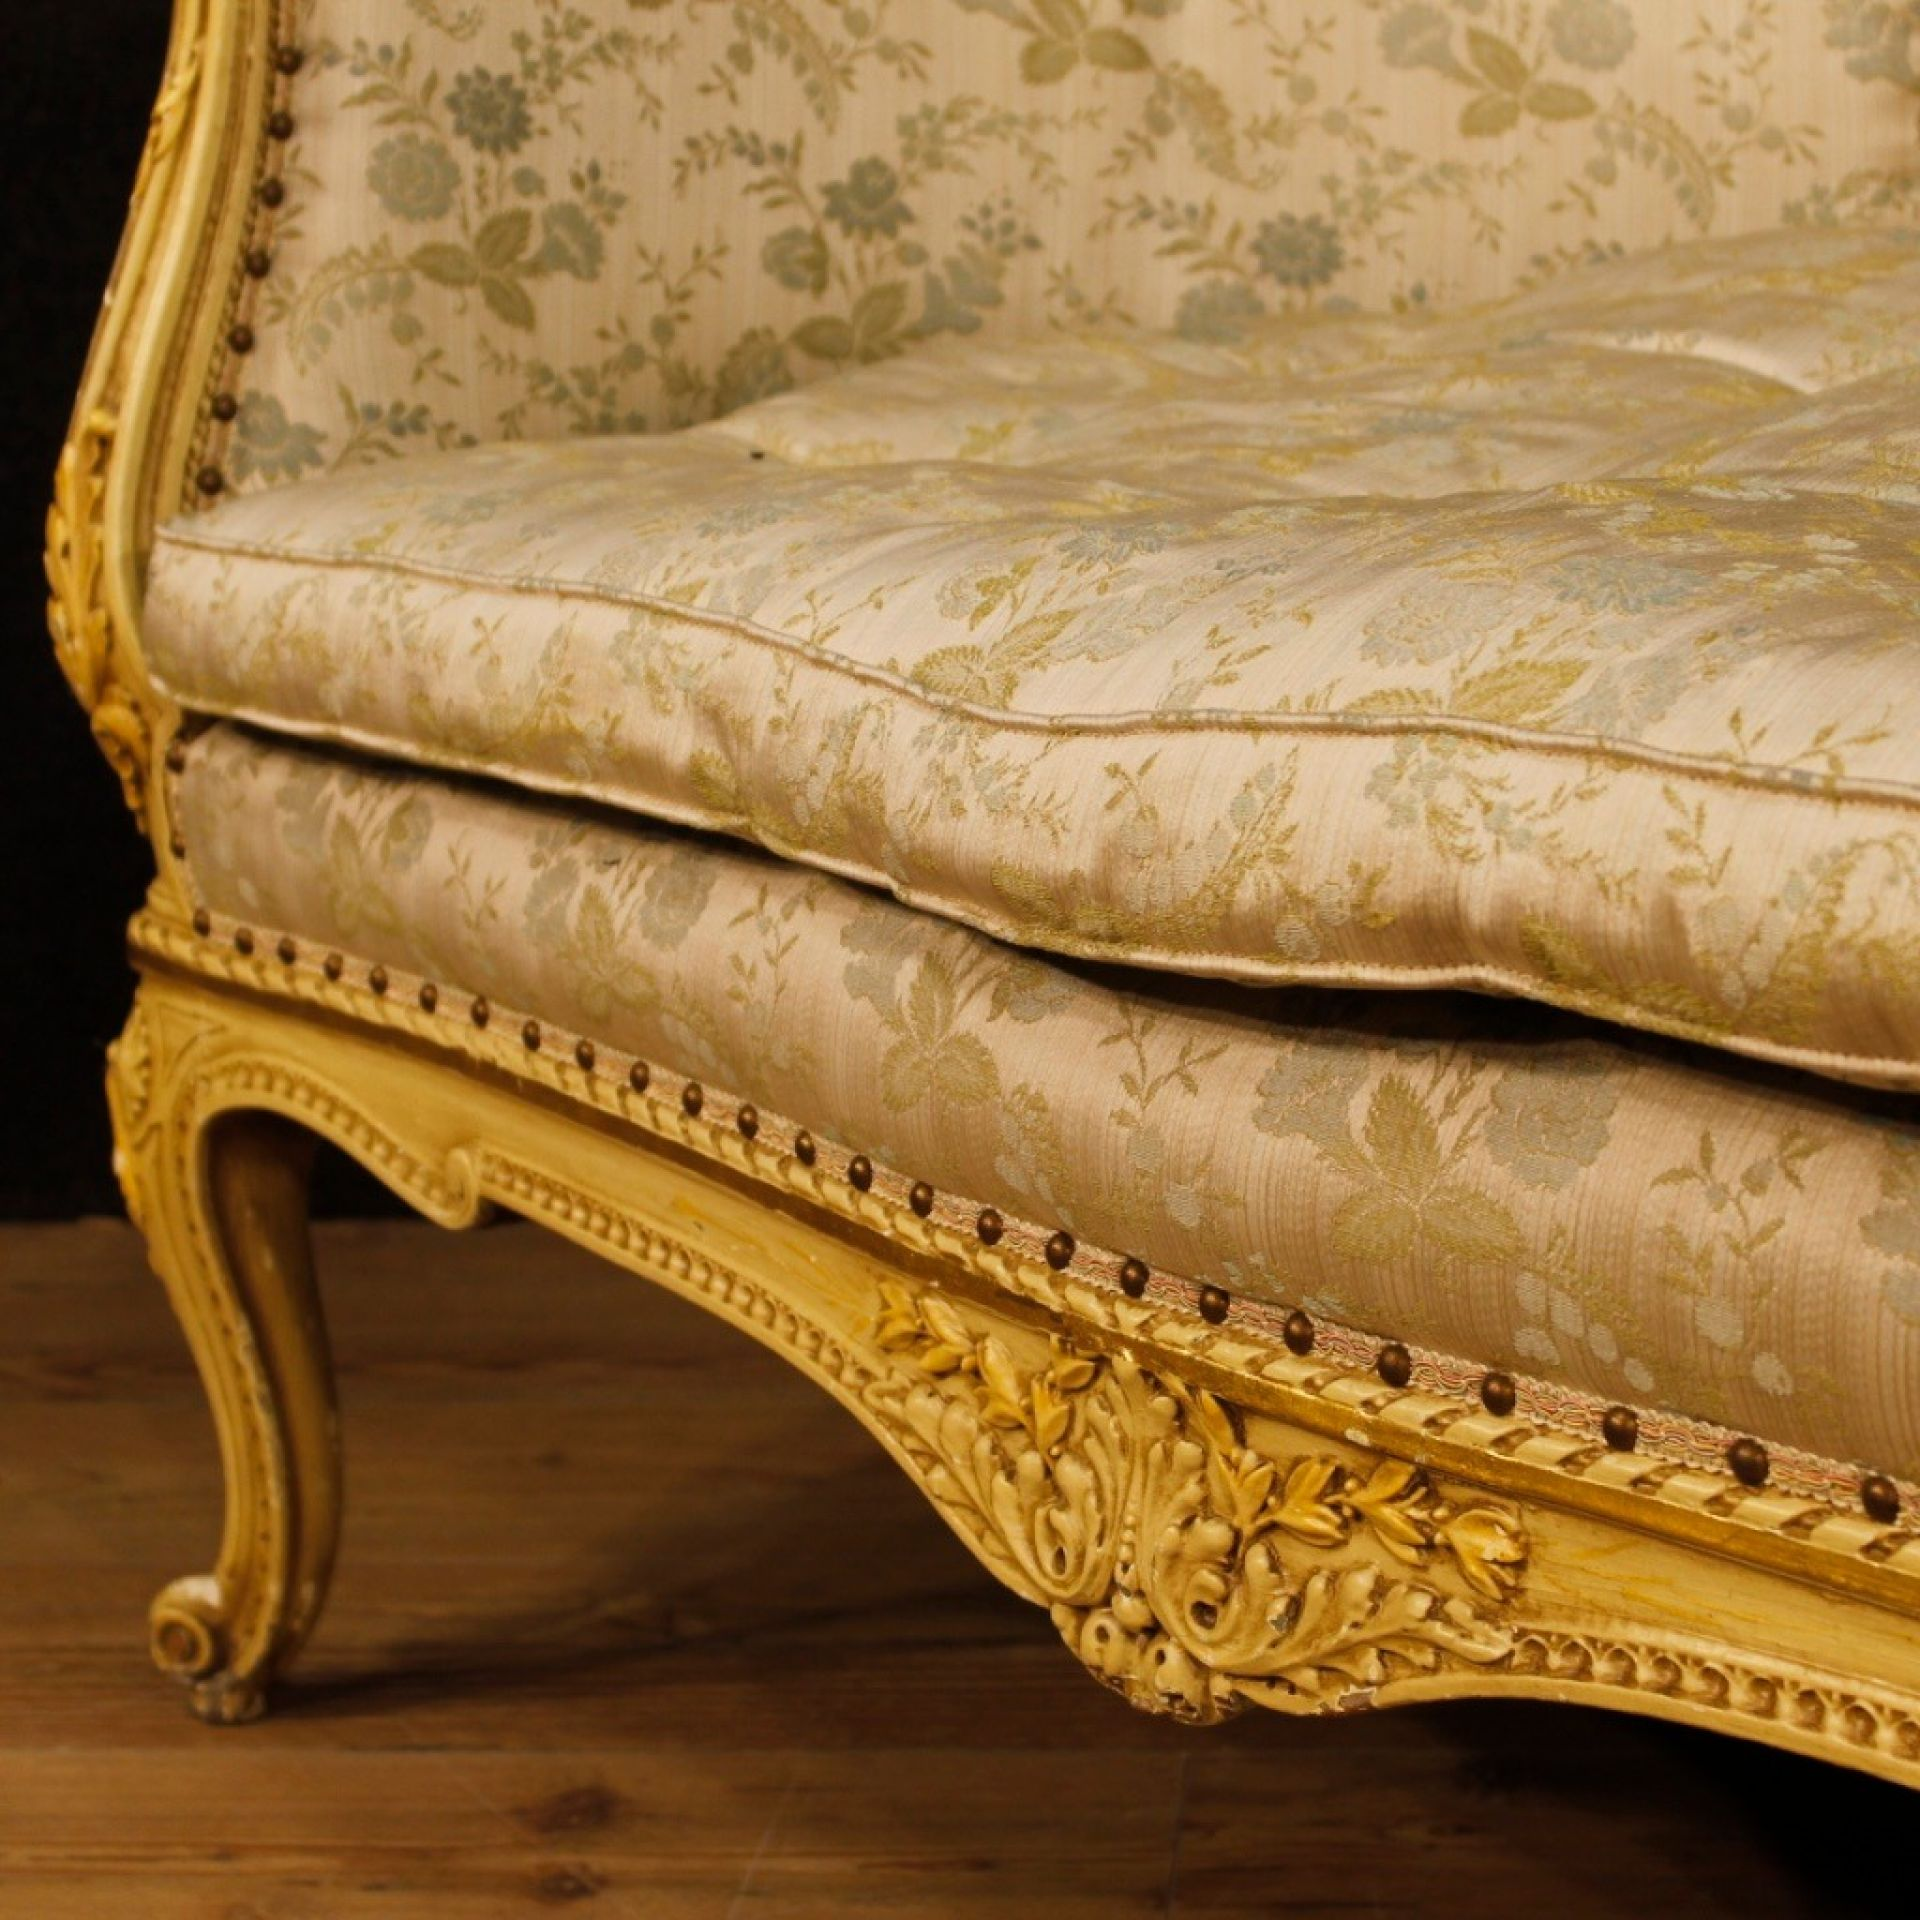 Italian Corbeille Sofa In Lacquered Wood With Floral Fabric From 20th Century